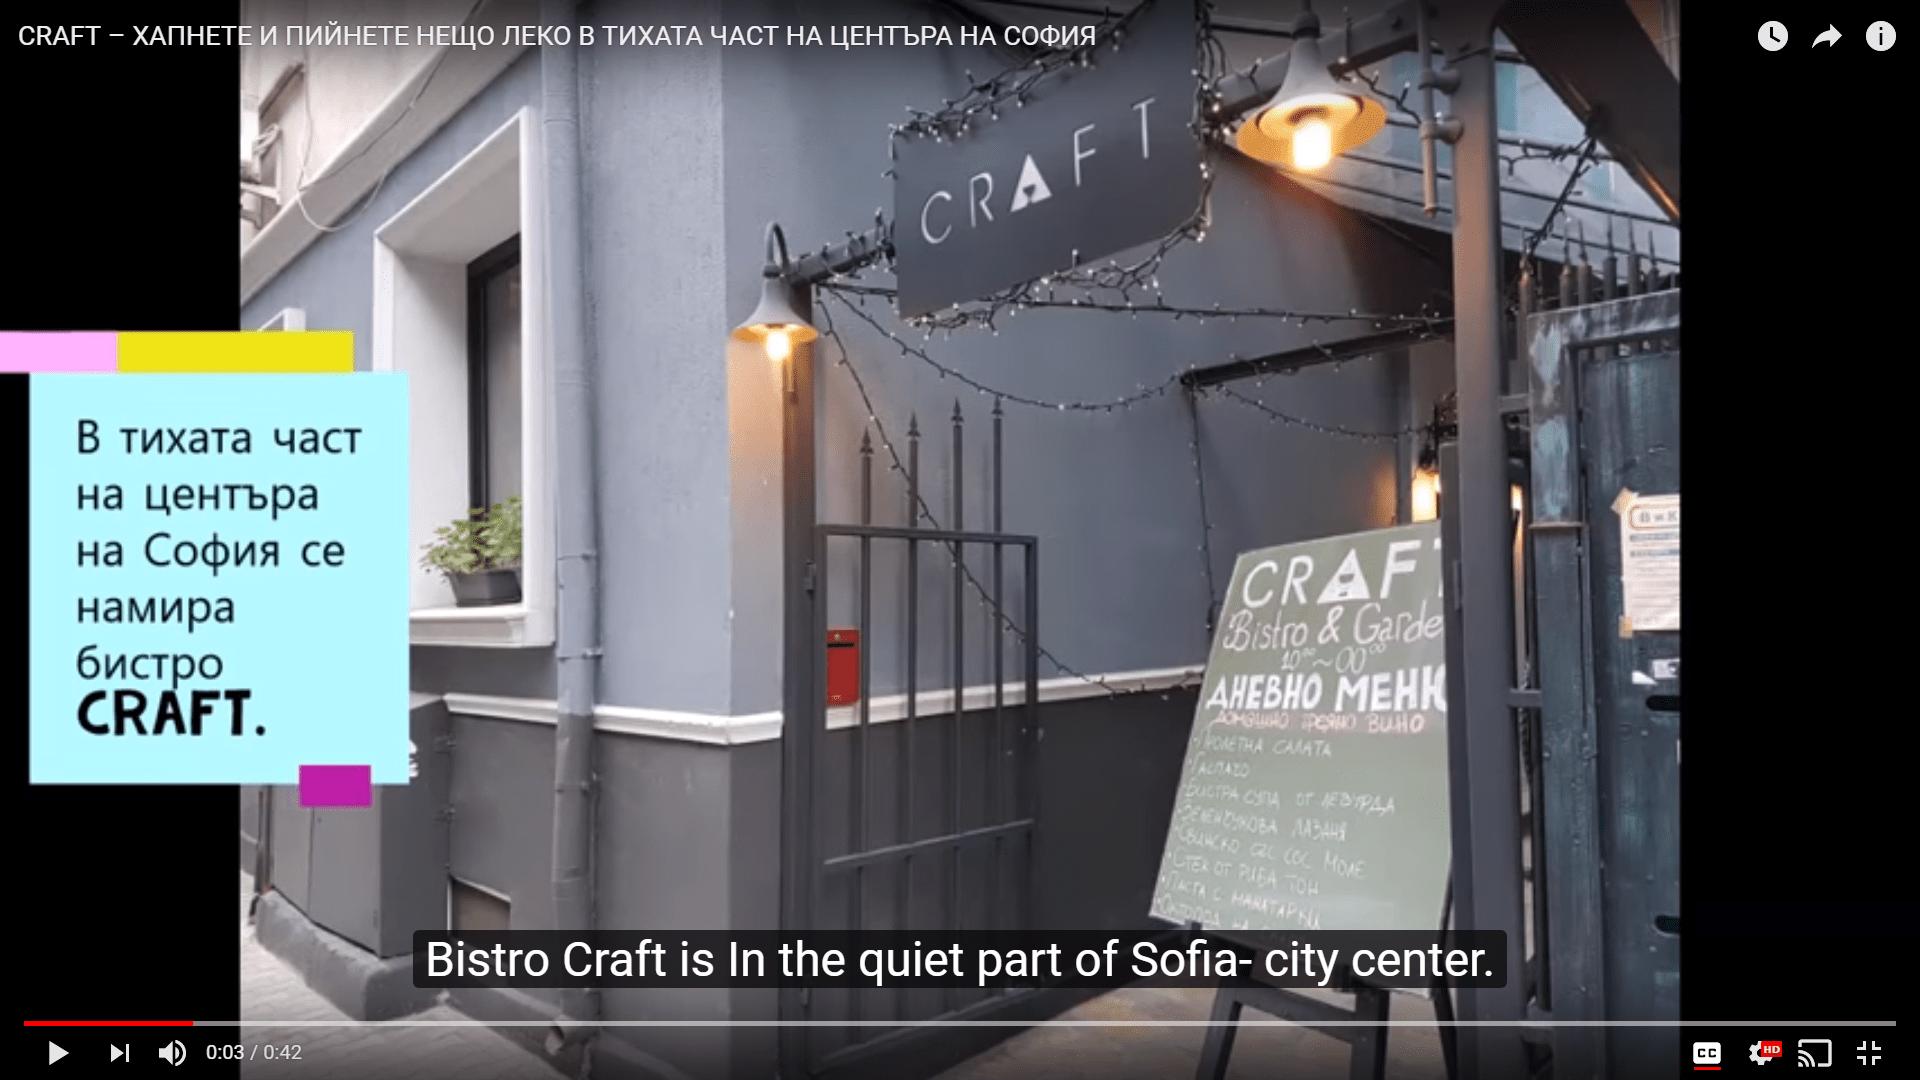 Bistro Craft, Sofia in the YouTube channel of placescases.com